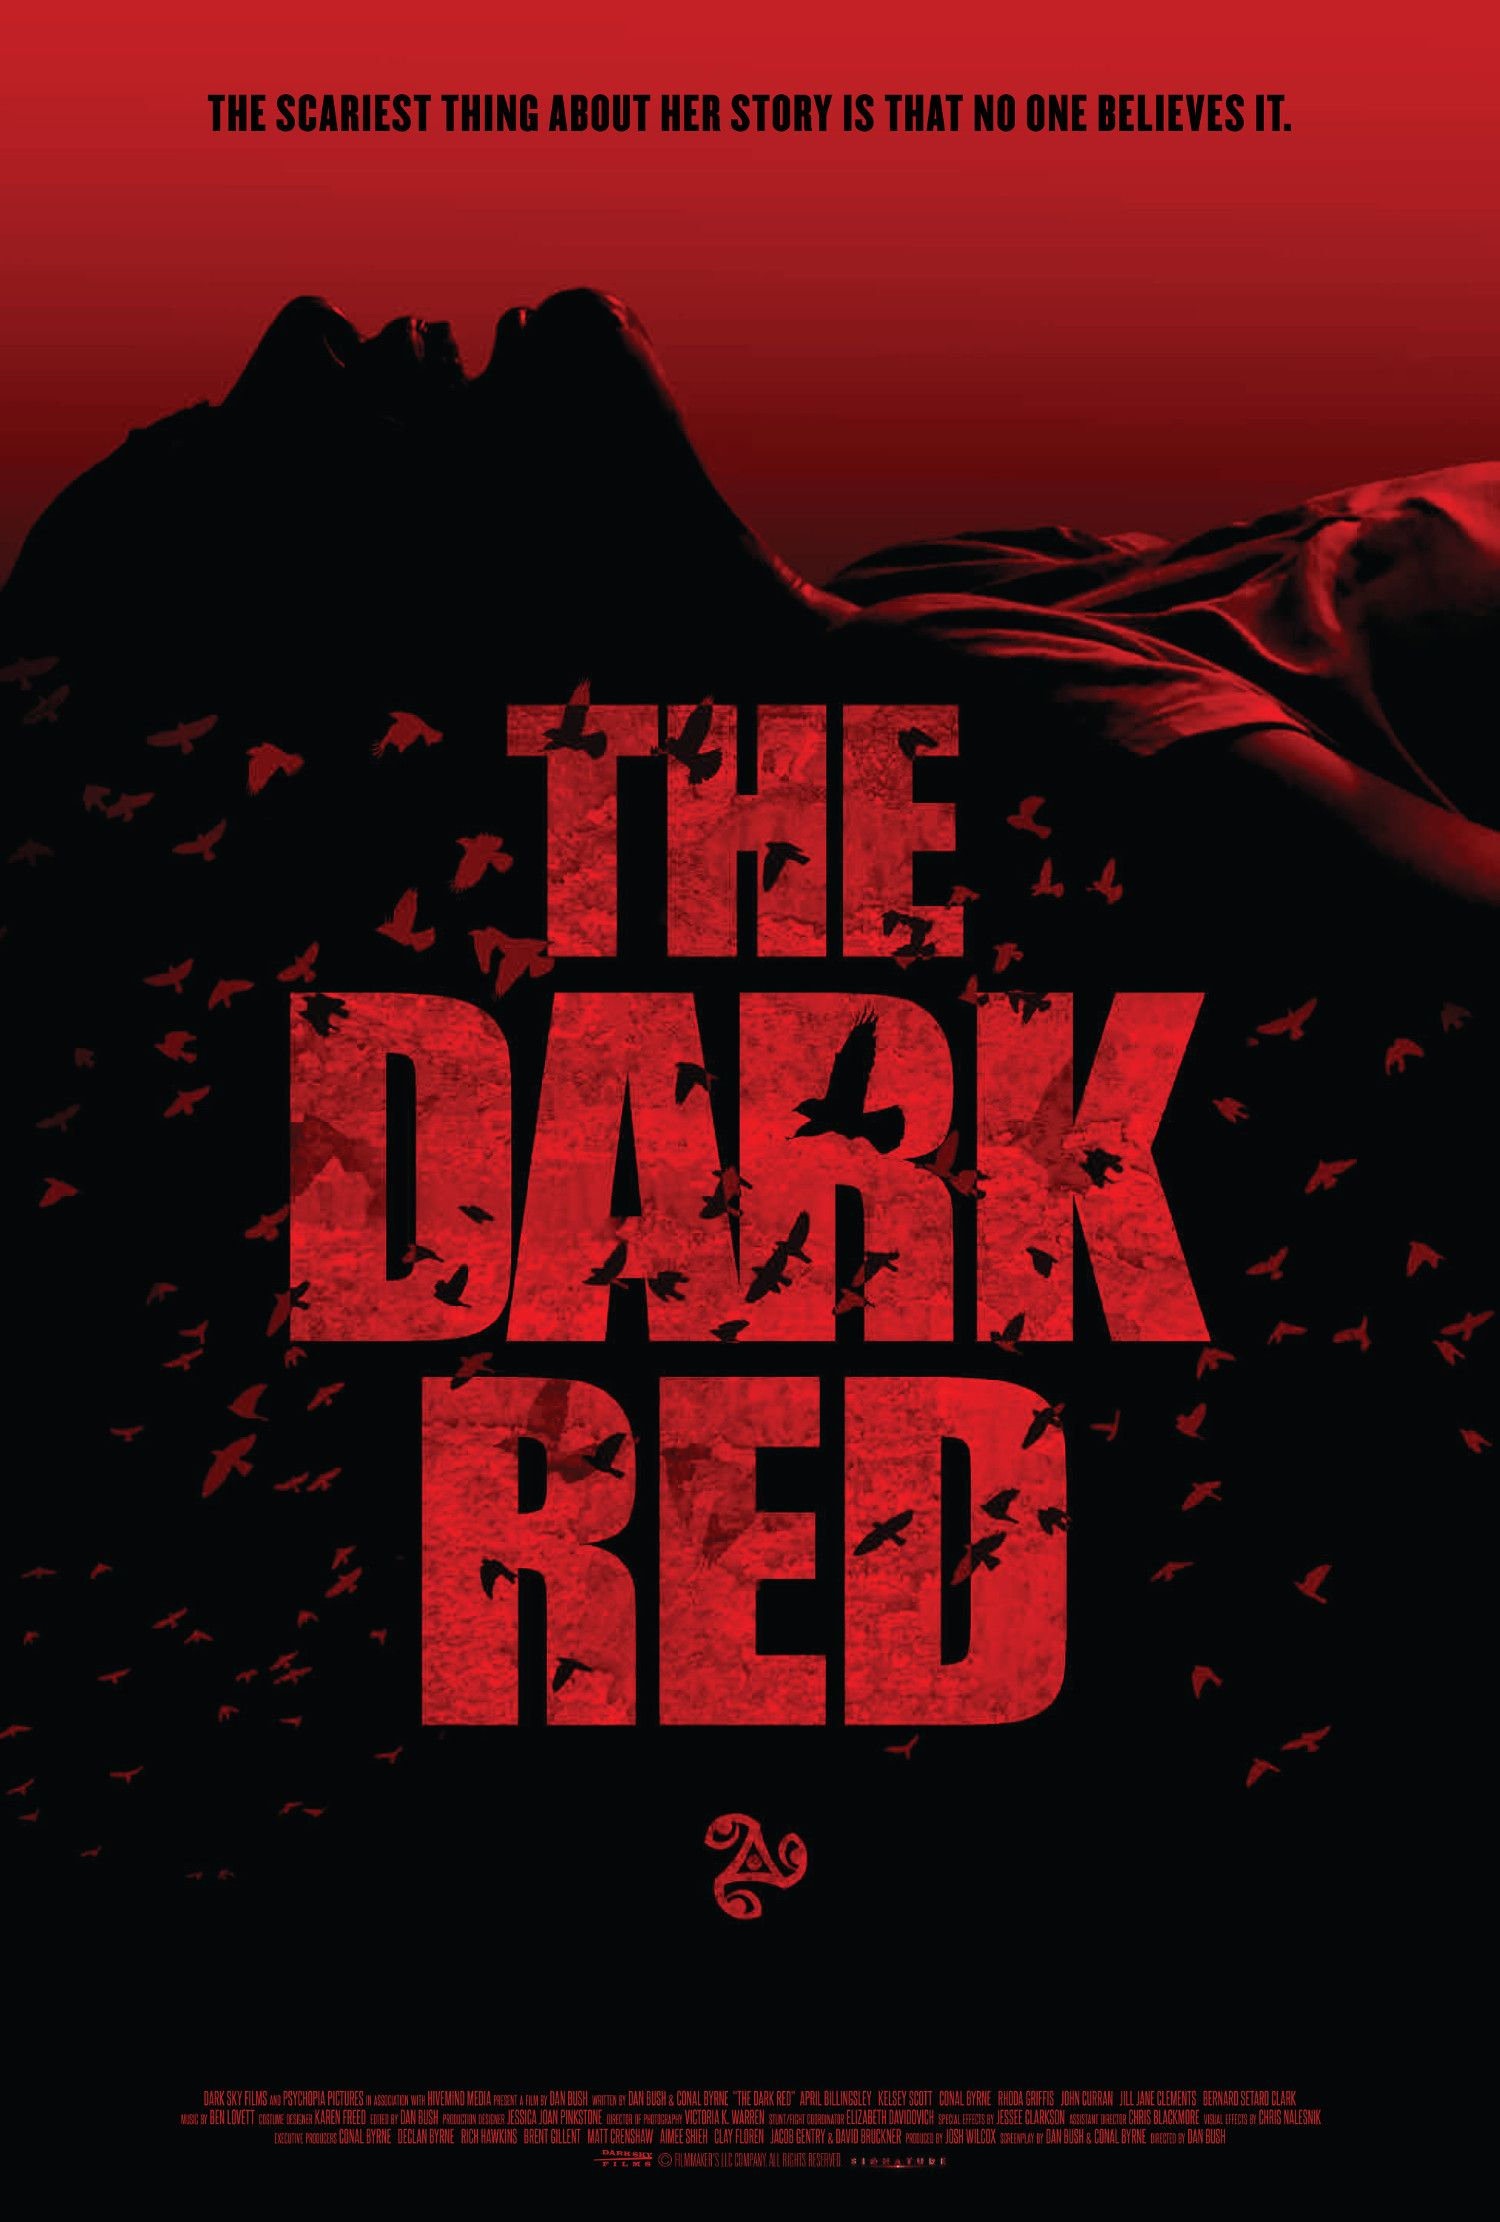 DARK SKY FILMS RELEASING 'THE DARK RED'